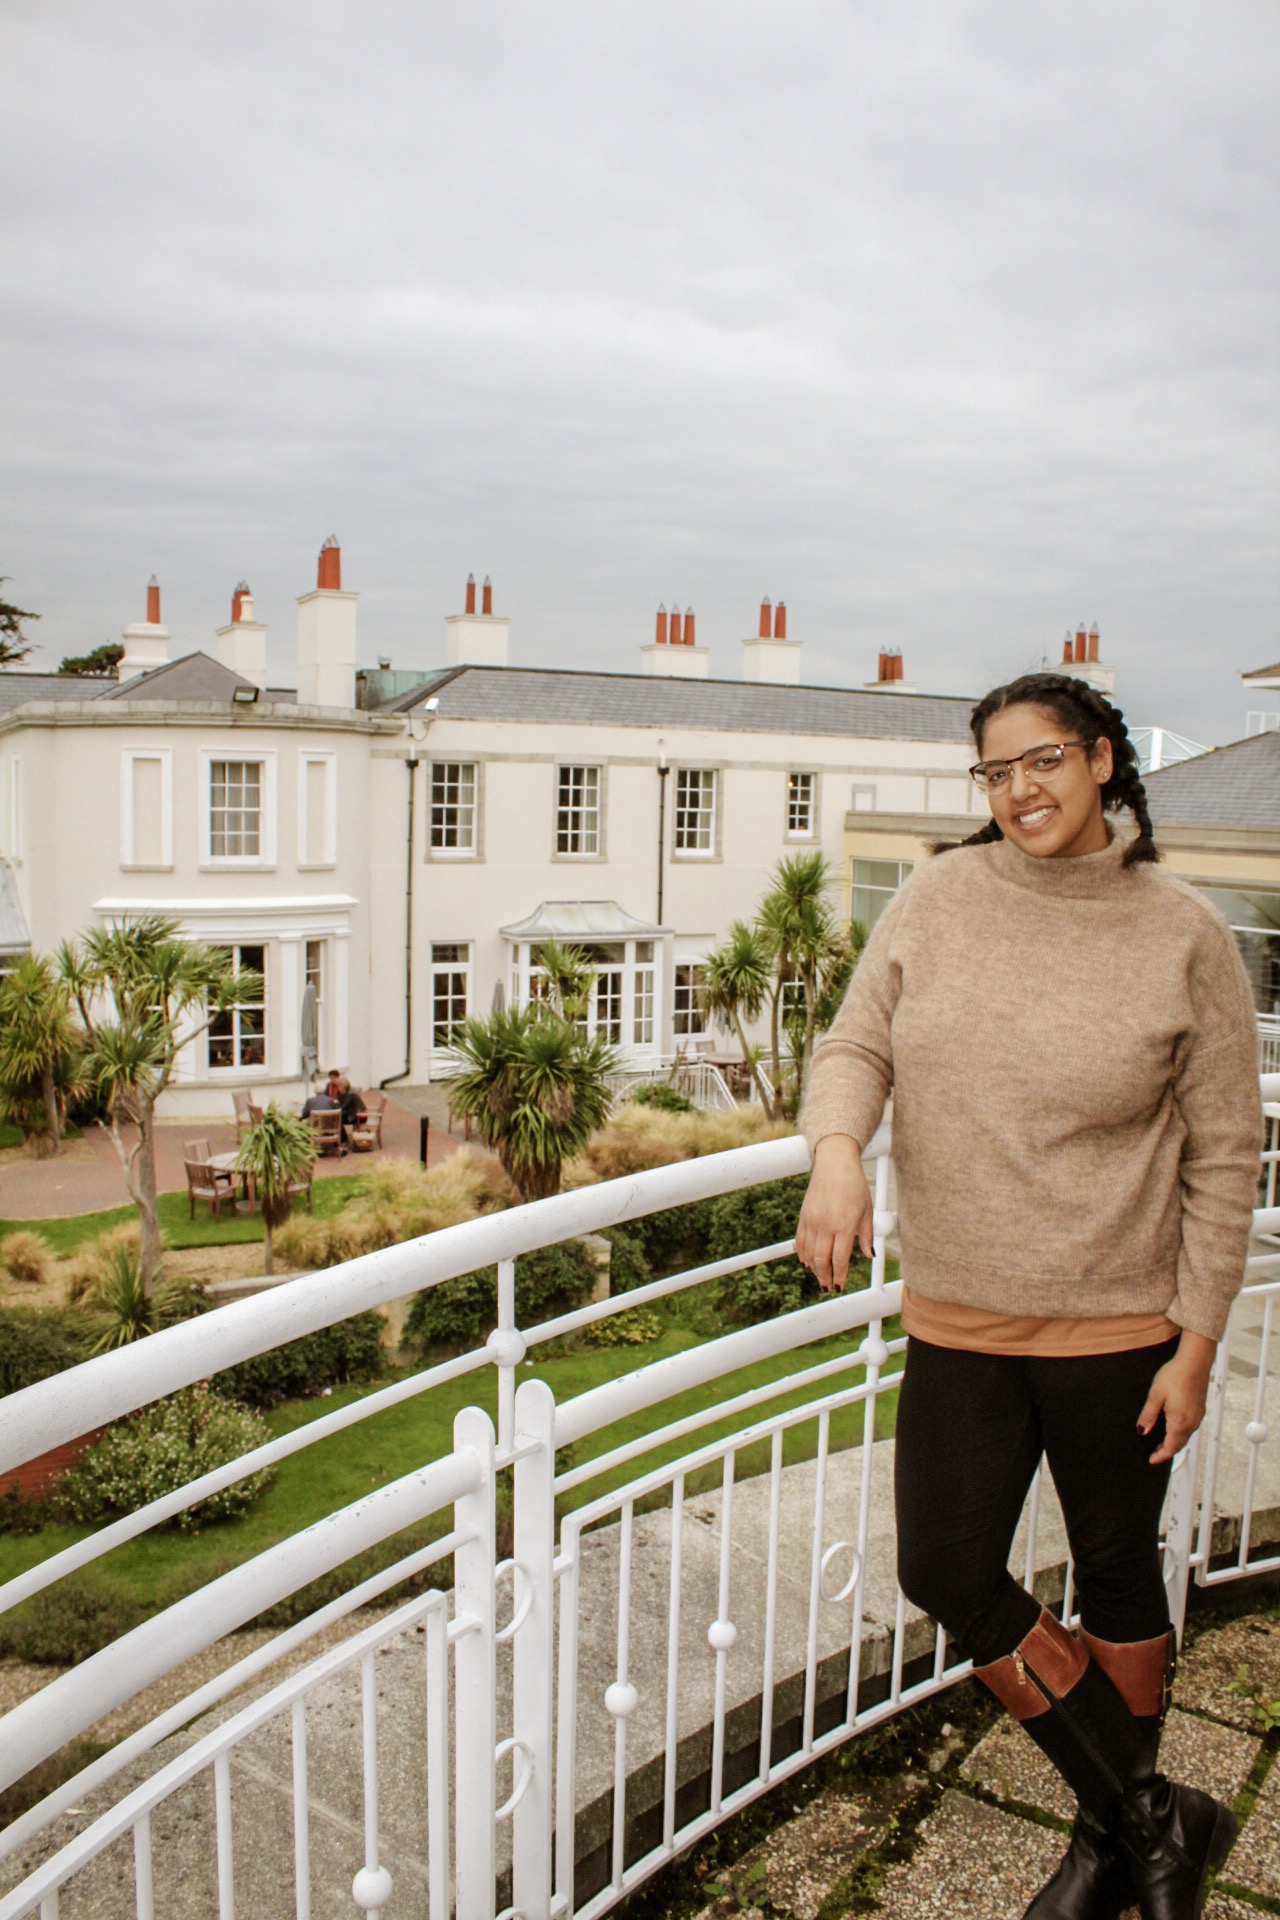 On the balcony of the Jameson Suite at the Portmarnock Hotel near Dublin. This was a previous home of the Jameson Family.